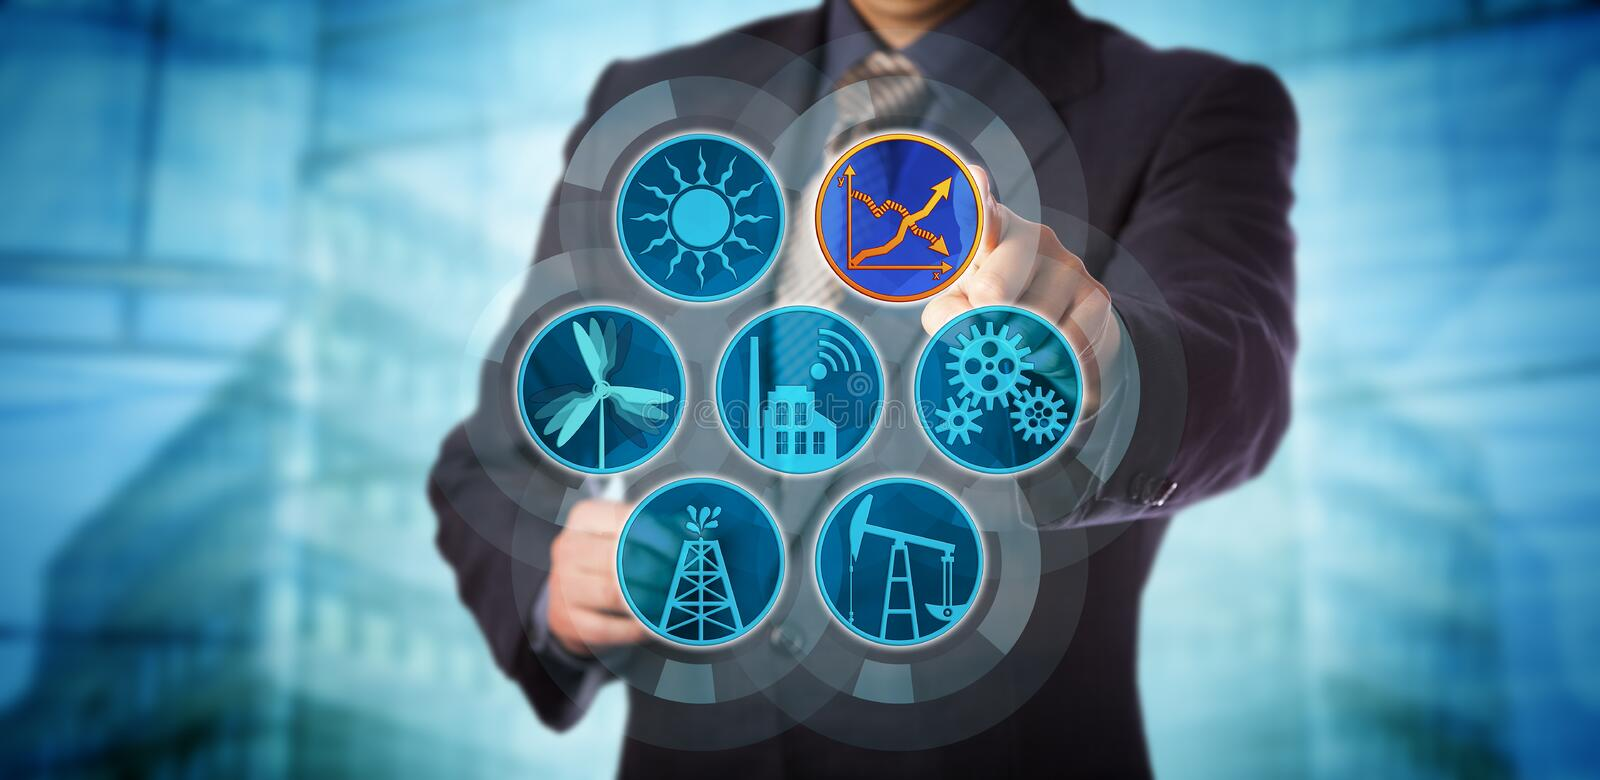 Blauer Chip Manager Monitoring Energy Efficiency lizenzfreies stockfoto